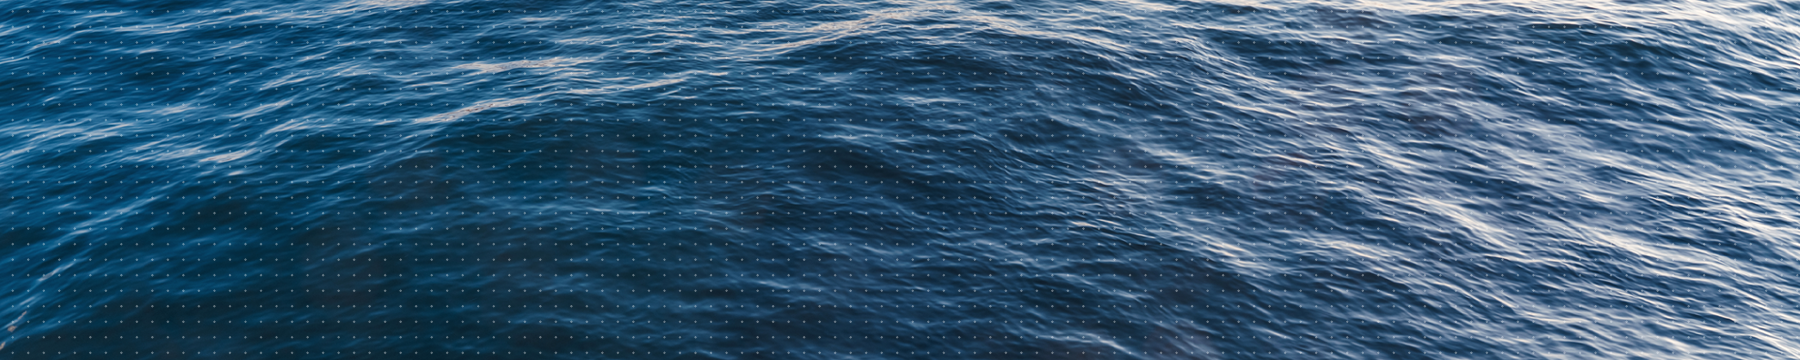 Photograph of water in the ocean